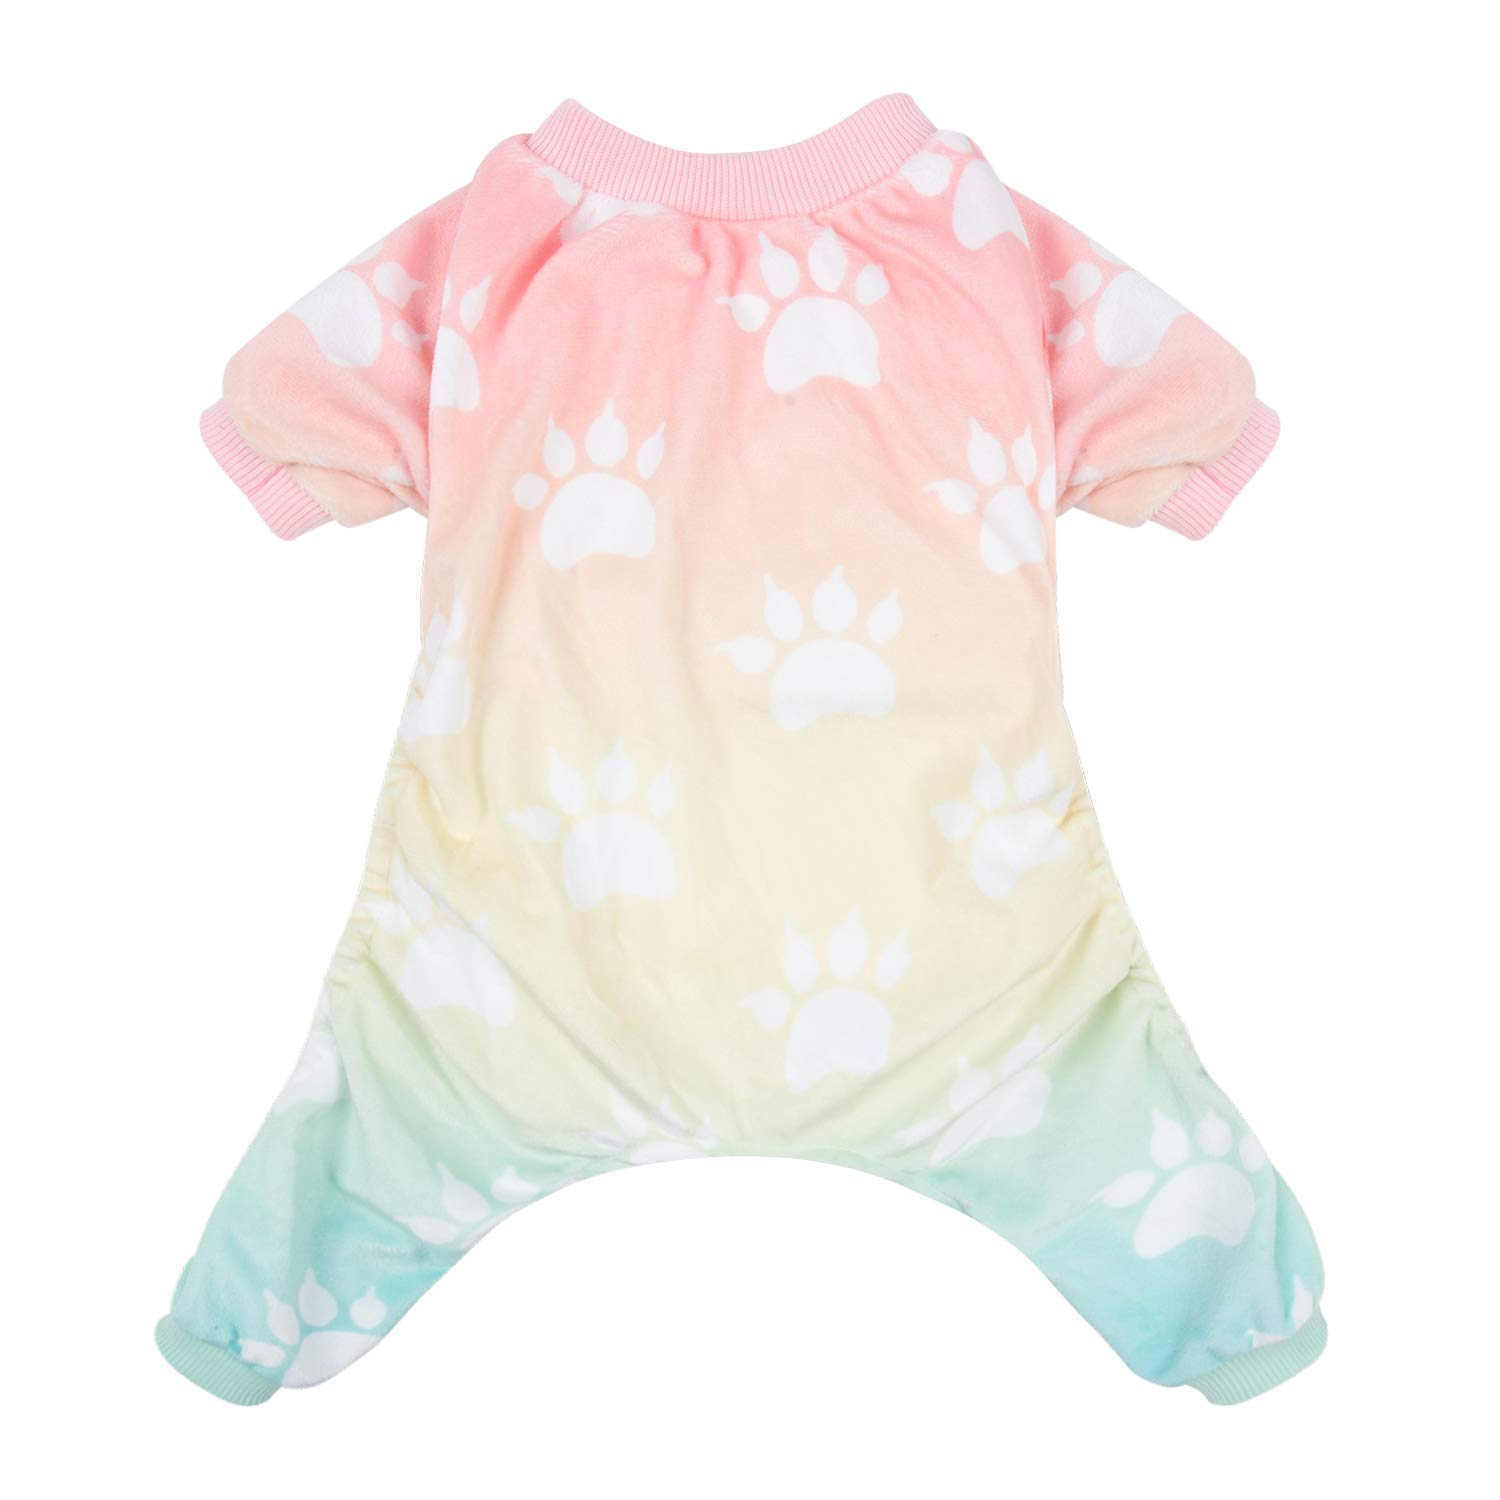 CuteBone Soft Dog Pajamas Gradient Footprint Doggy Shirts for Medium Puppies P09M by CuteBone